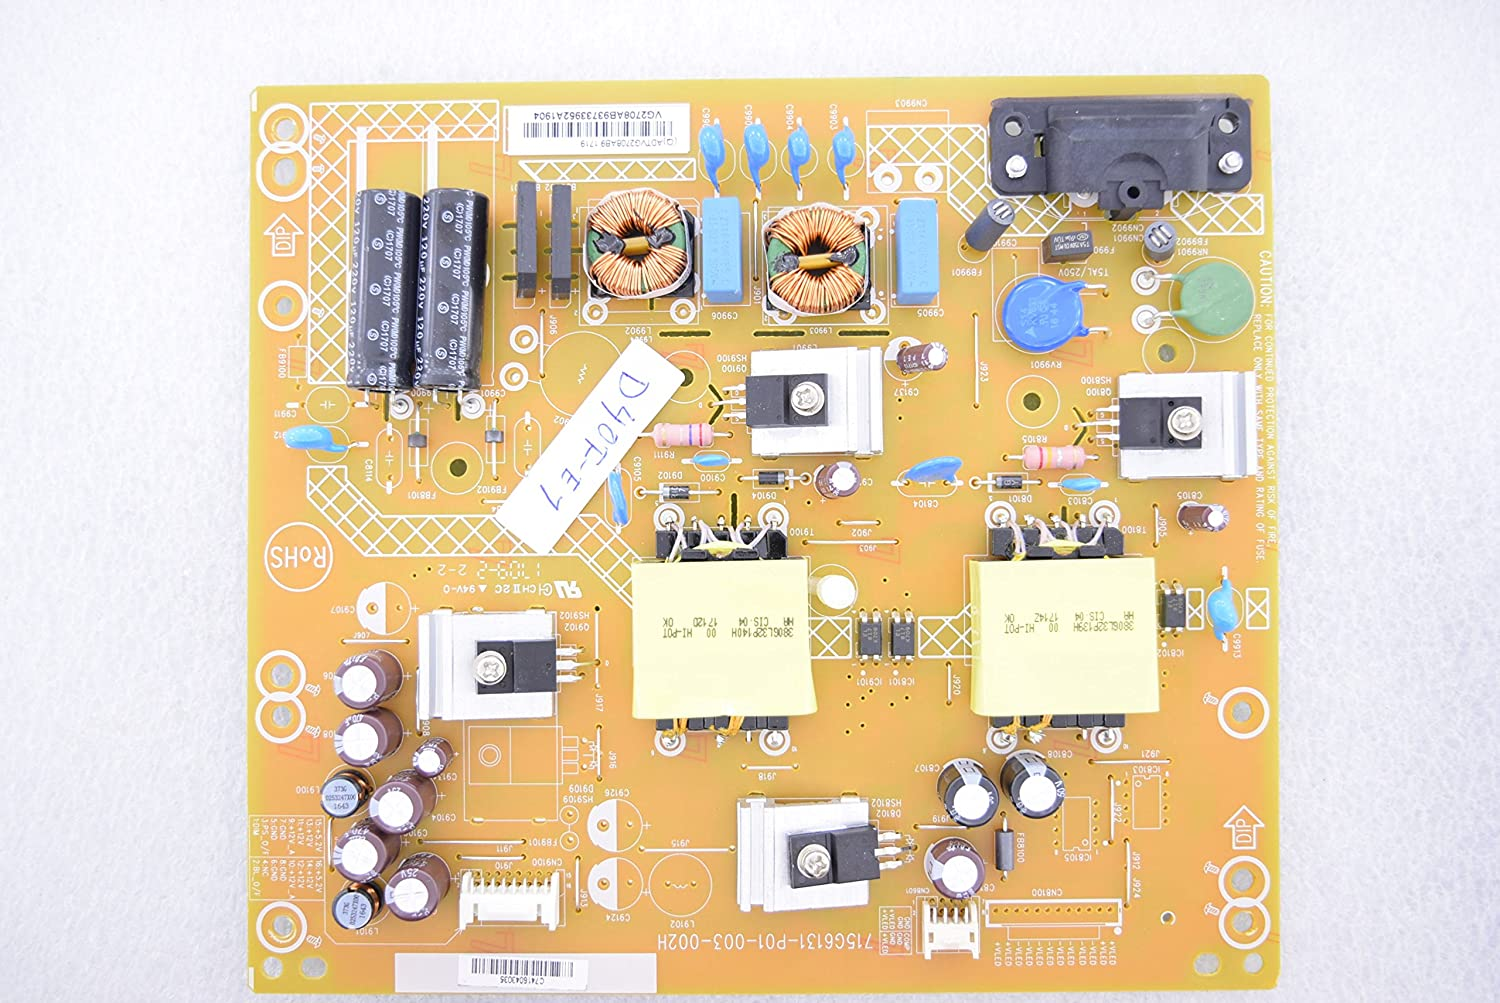 VIZIO D40F-E1 715G6131-P01-003-002H Power Supply 5607